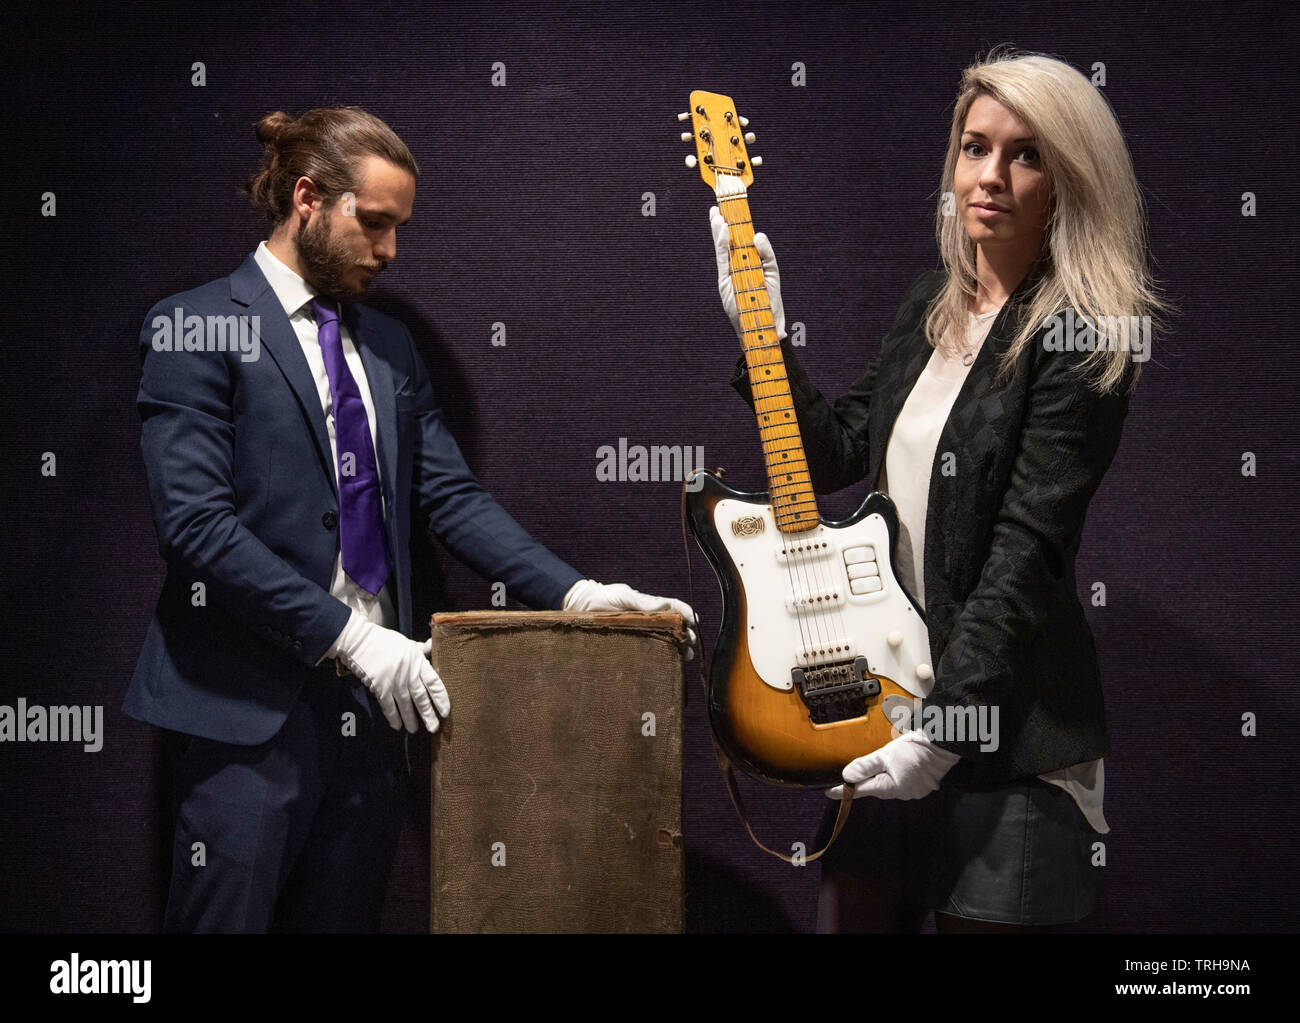 Bonhams, London, UK. 6th June 2019. Bonhams Entertainment Memorabilia sale preview. George Harrison's Futurama electric guitar, c 1958, on display at Bonhams Entertainment Memorabilia sale preview Knightsbridge for sale on 12th June. Estimate £200,000-300,000. This historically important guitar, which comes in its original case (pictured) embellished with Hamburg stickers, has never been seen on the market before; it has impeccable provenance and is extremely well-documented. Credit: Malcolm Park/Alamy Live News. - Stock Image